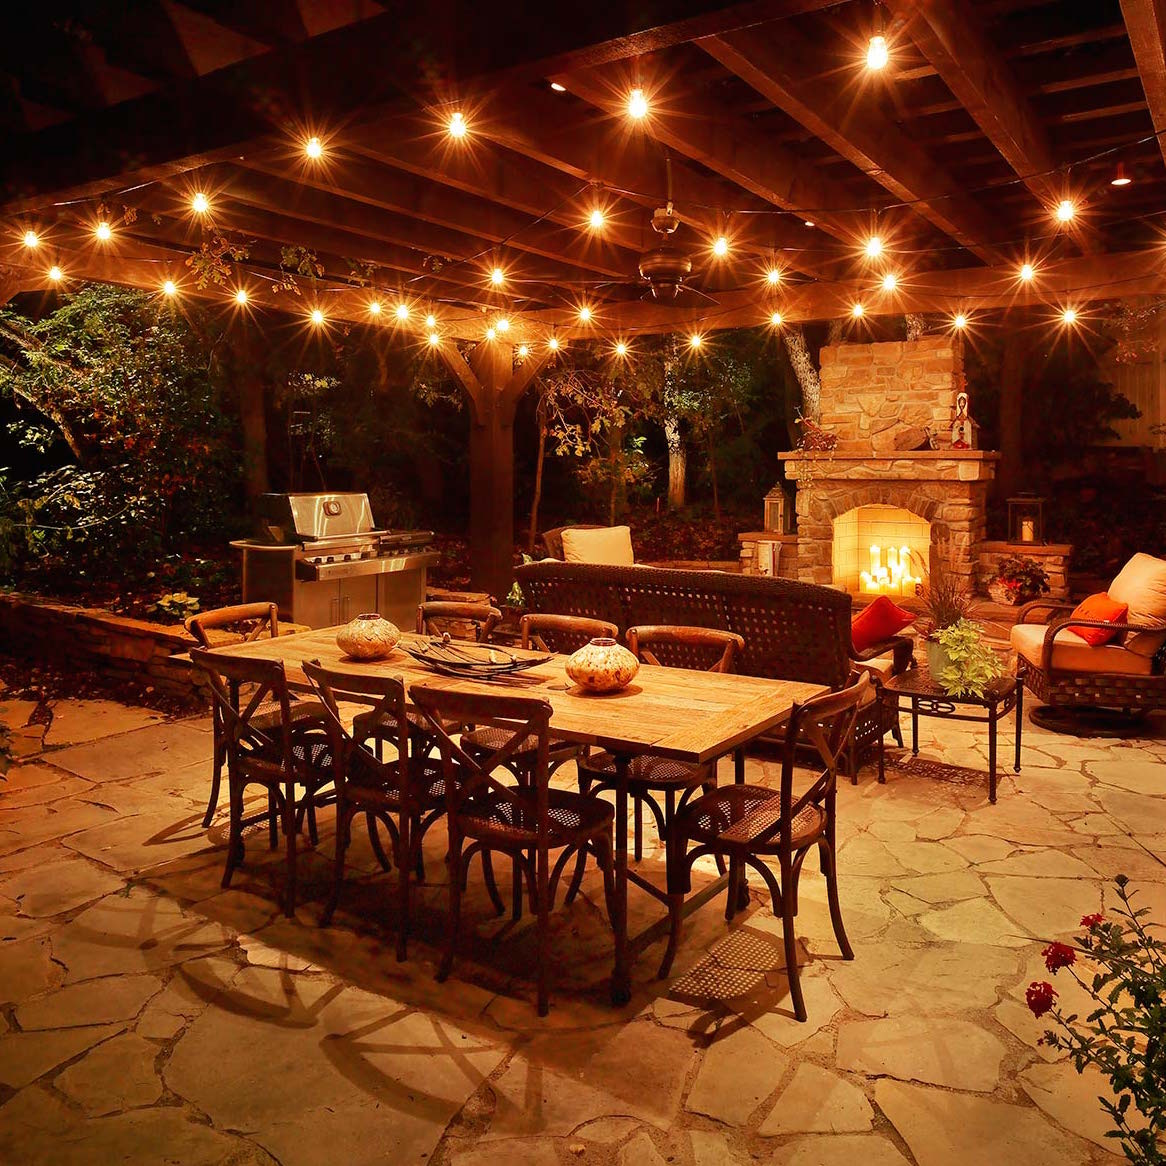 Lighting Hacks for your Outdoor Event!